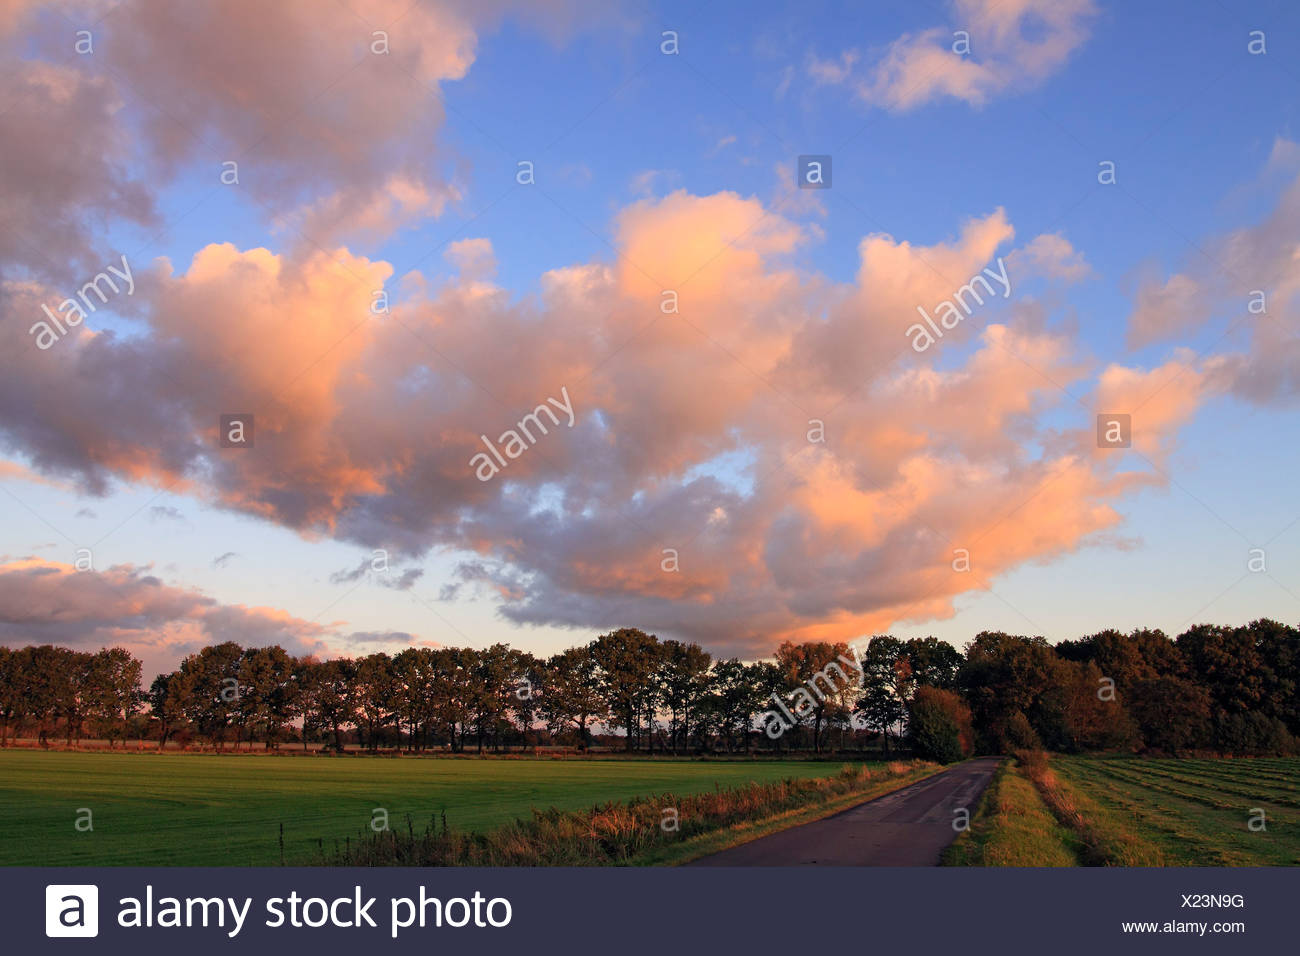 Dramatic sky with clouds illuminated in red light from the late evening sun at sunset, landscape in Oberalsterniederung Nature  - Stock Image